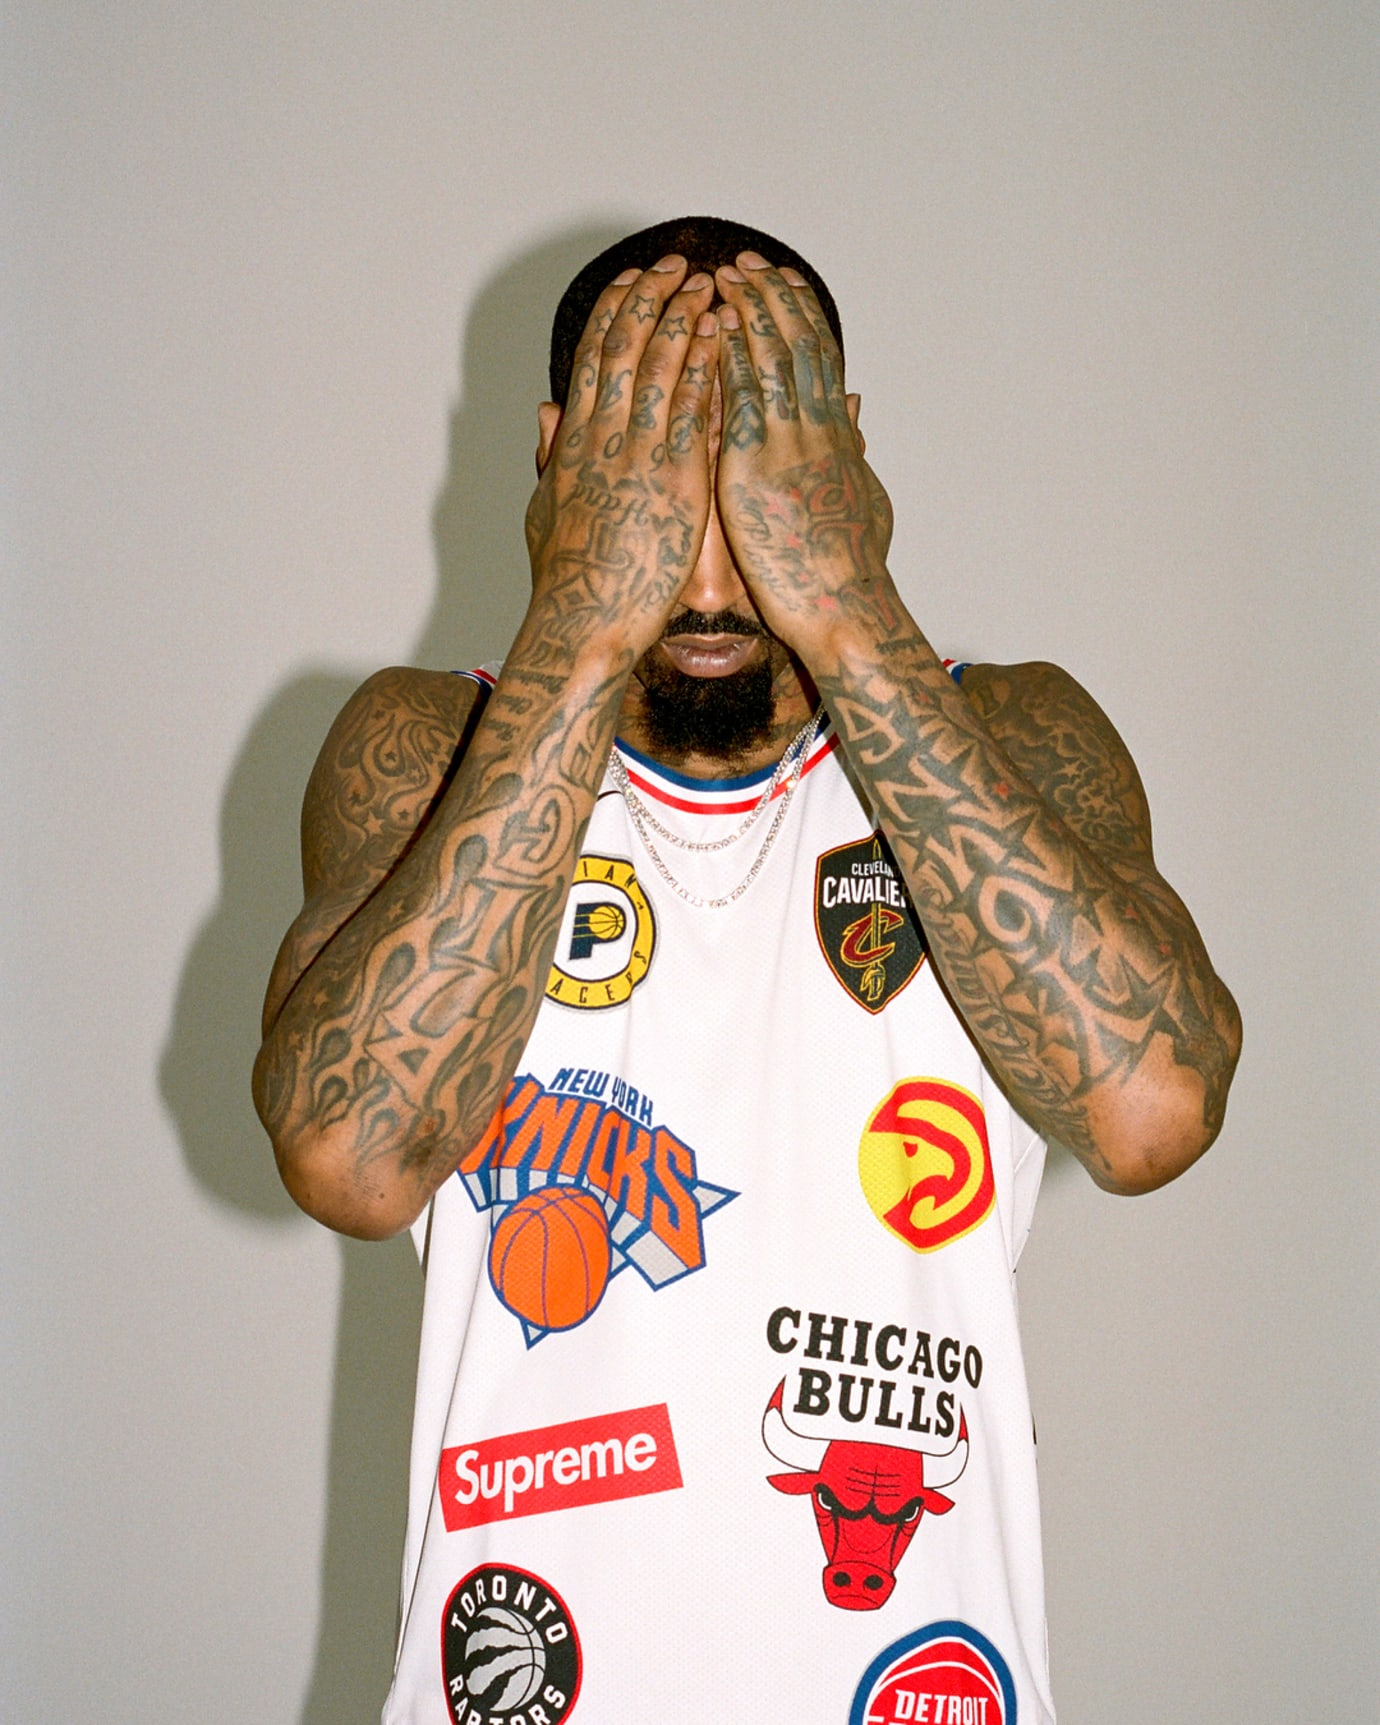 sale retailer 0fb57 ef90e J.R. Smith Supreme x Nike x NBA Jersey & Shorts | Sole Collector